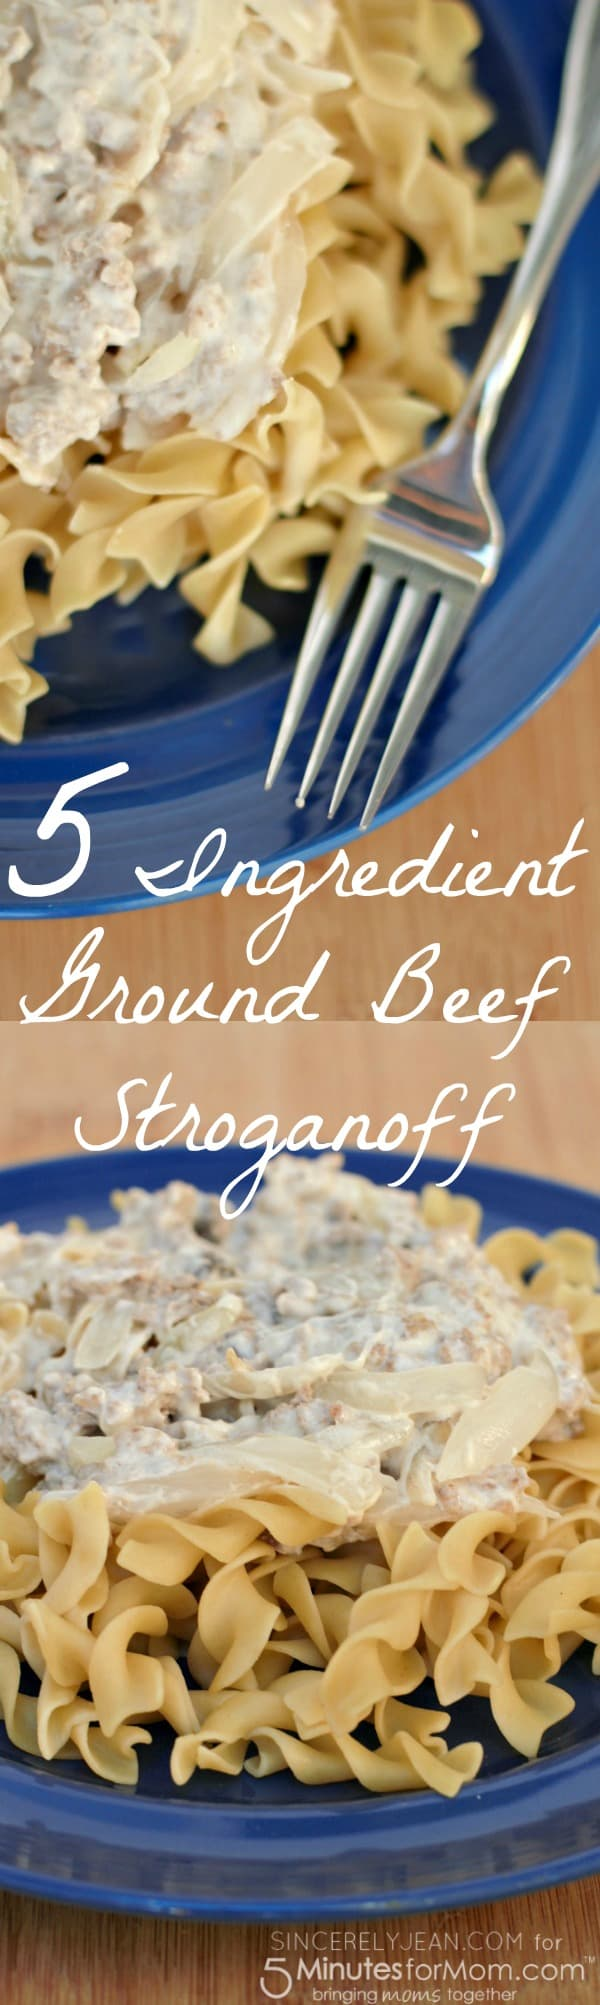 5 Ingredient Ground Beef Stroganoff